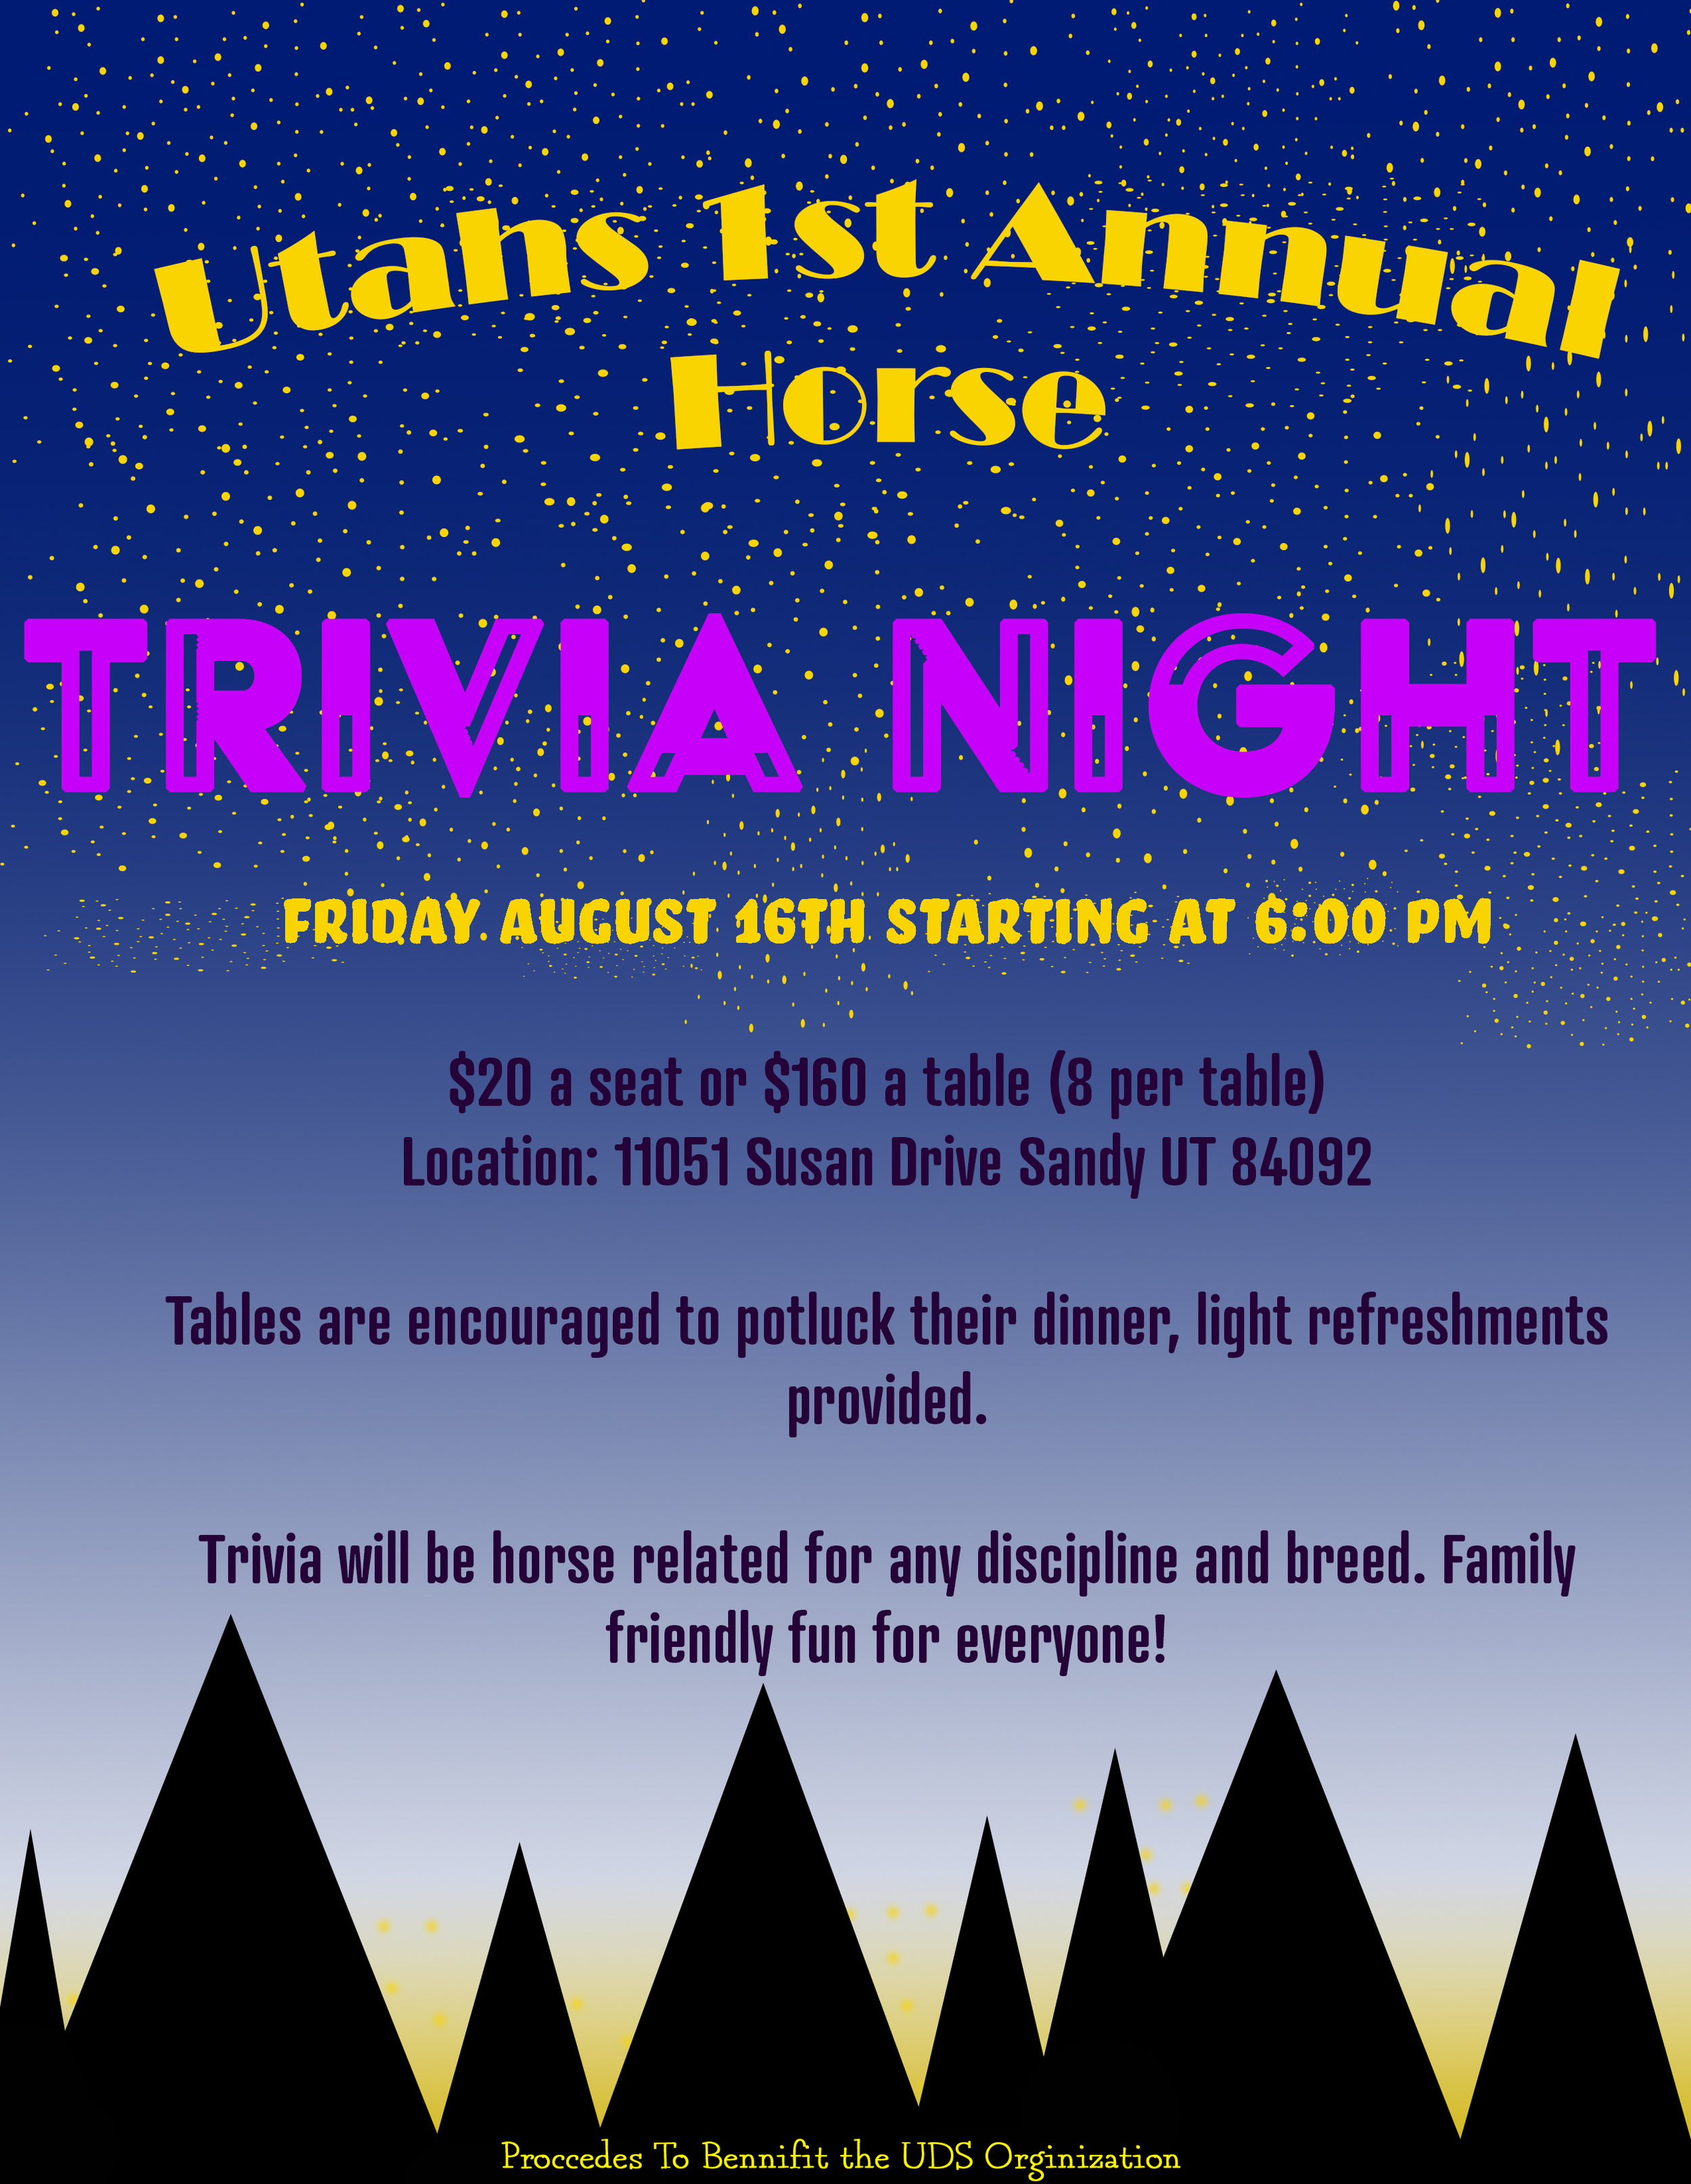 Trivia will be horse related for any discipline & breed. Family friendly fun for everyone!  Tables are encouraged to potluck their dinner.  Light refreshments will be provided.